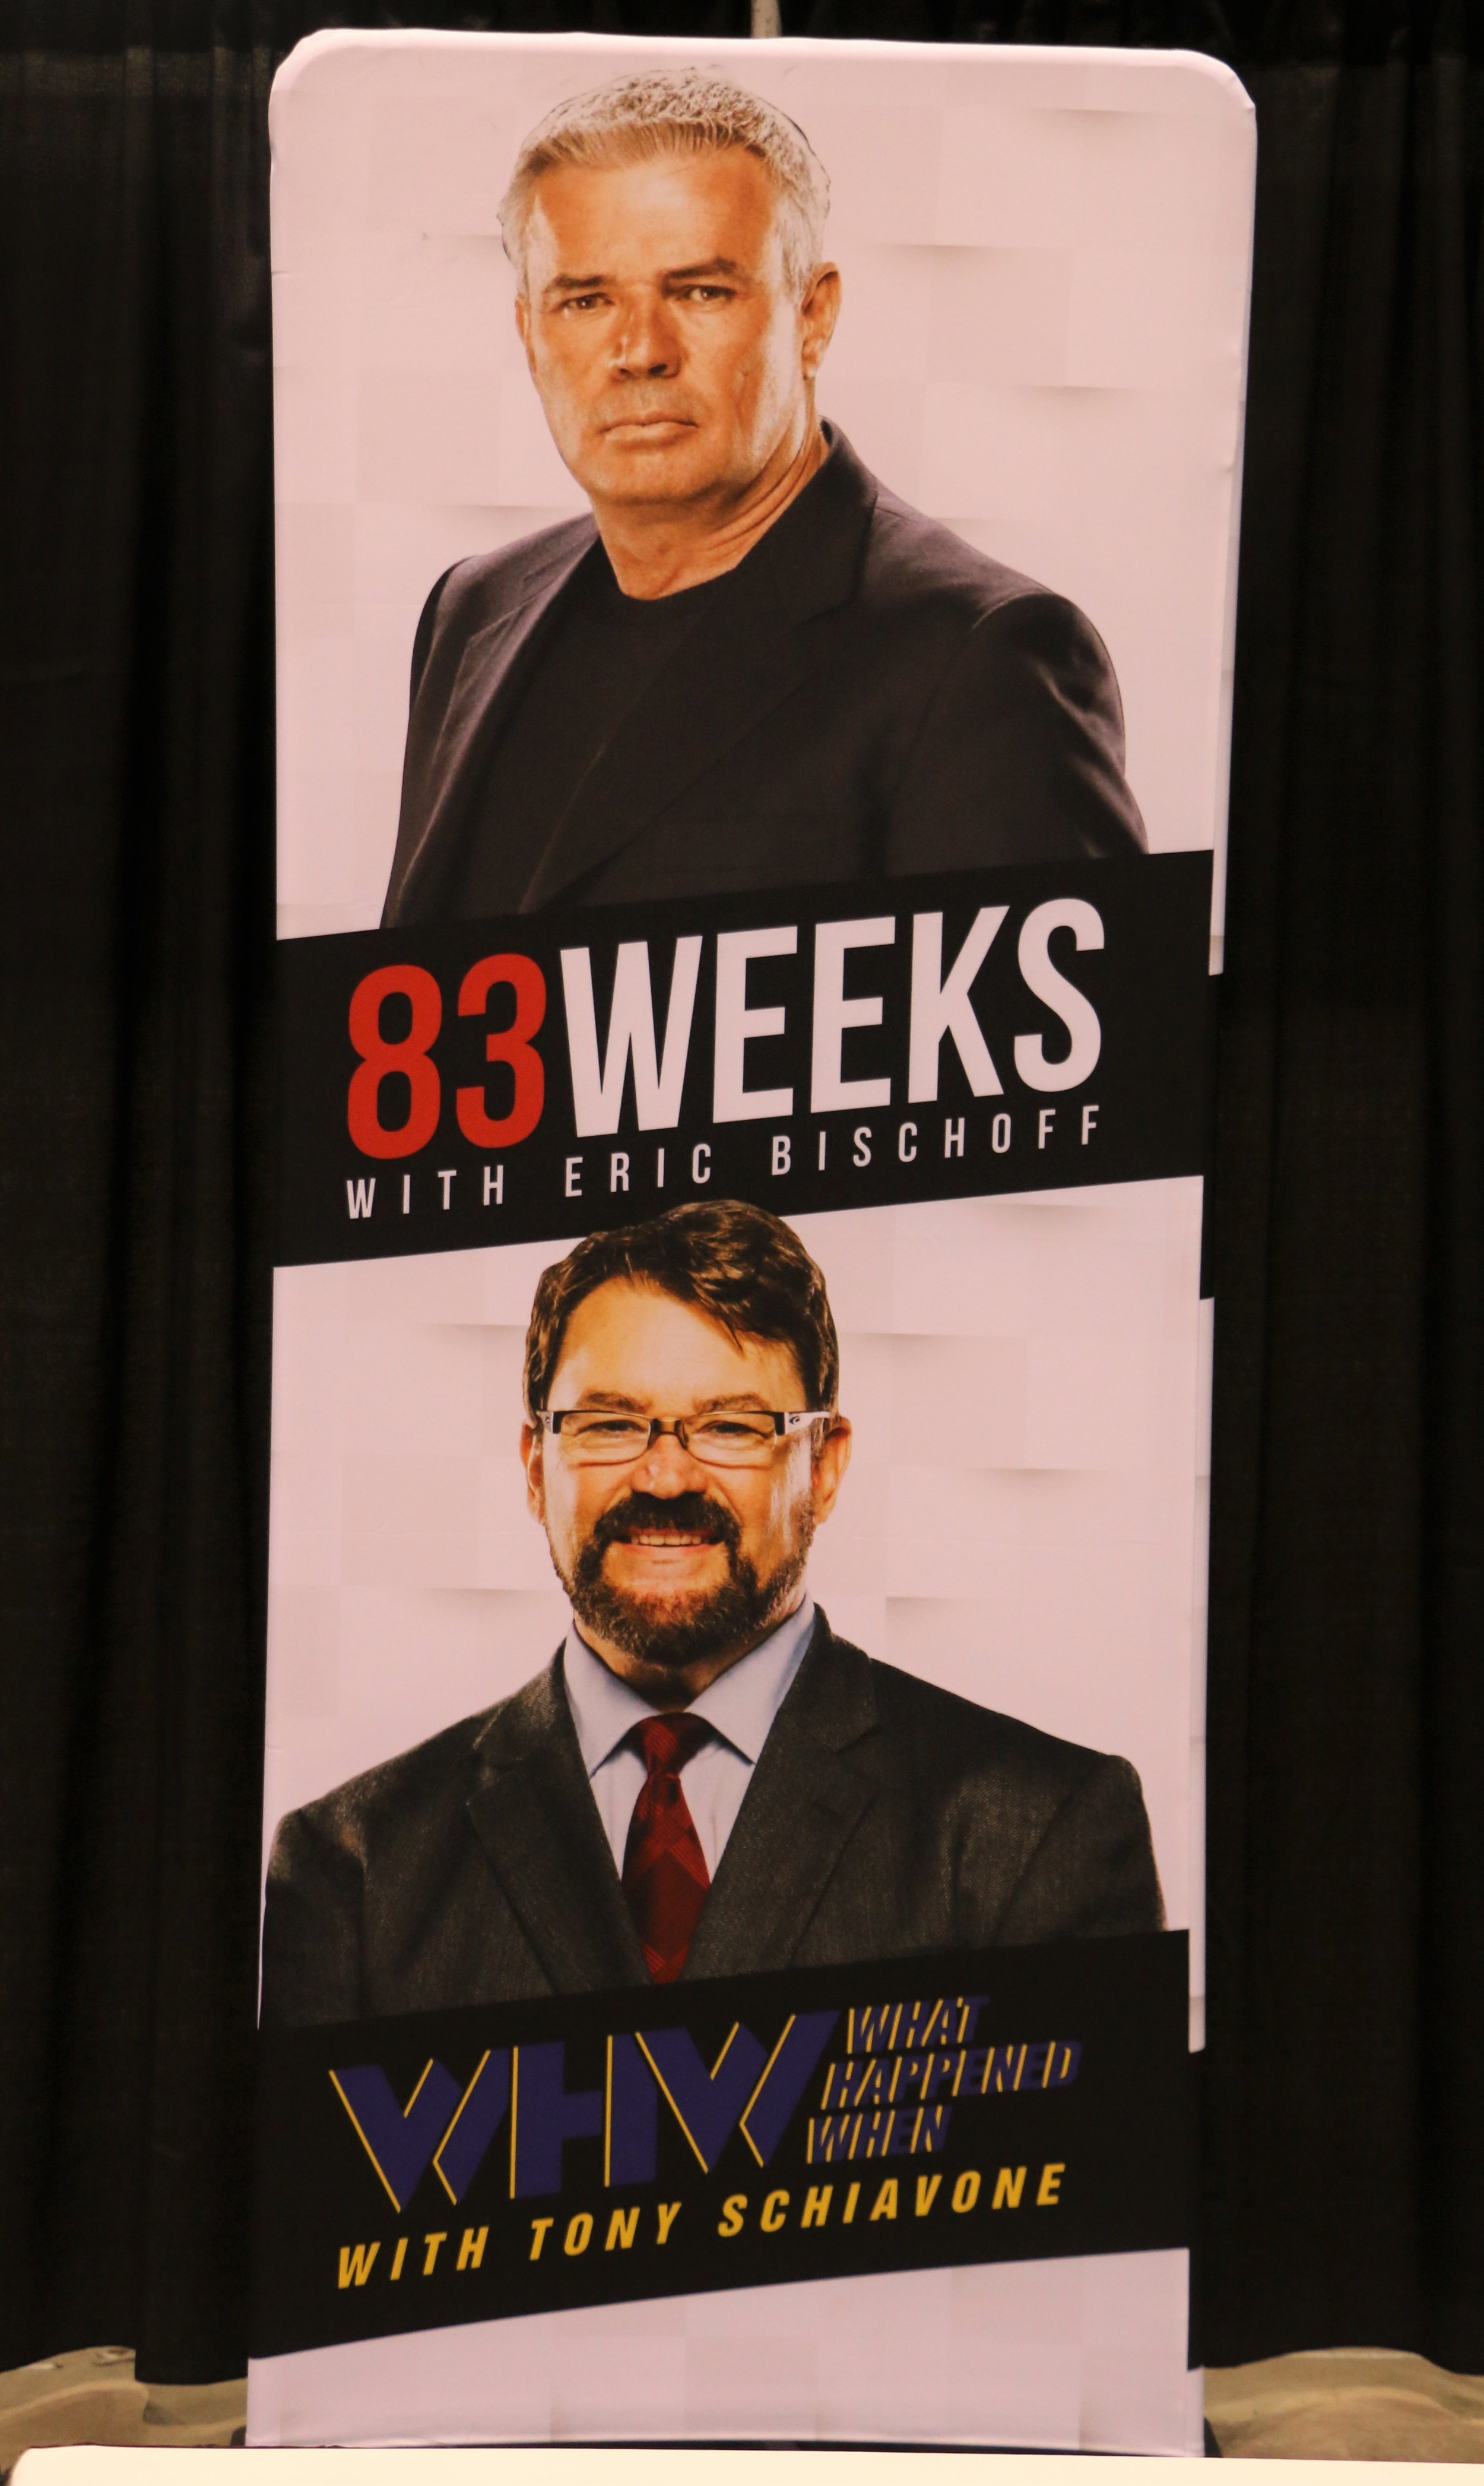 Former WCW personalities Eric Bischoff, top, and Tony Schiavone did a show together at C2E2.